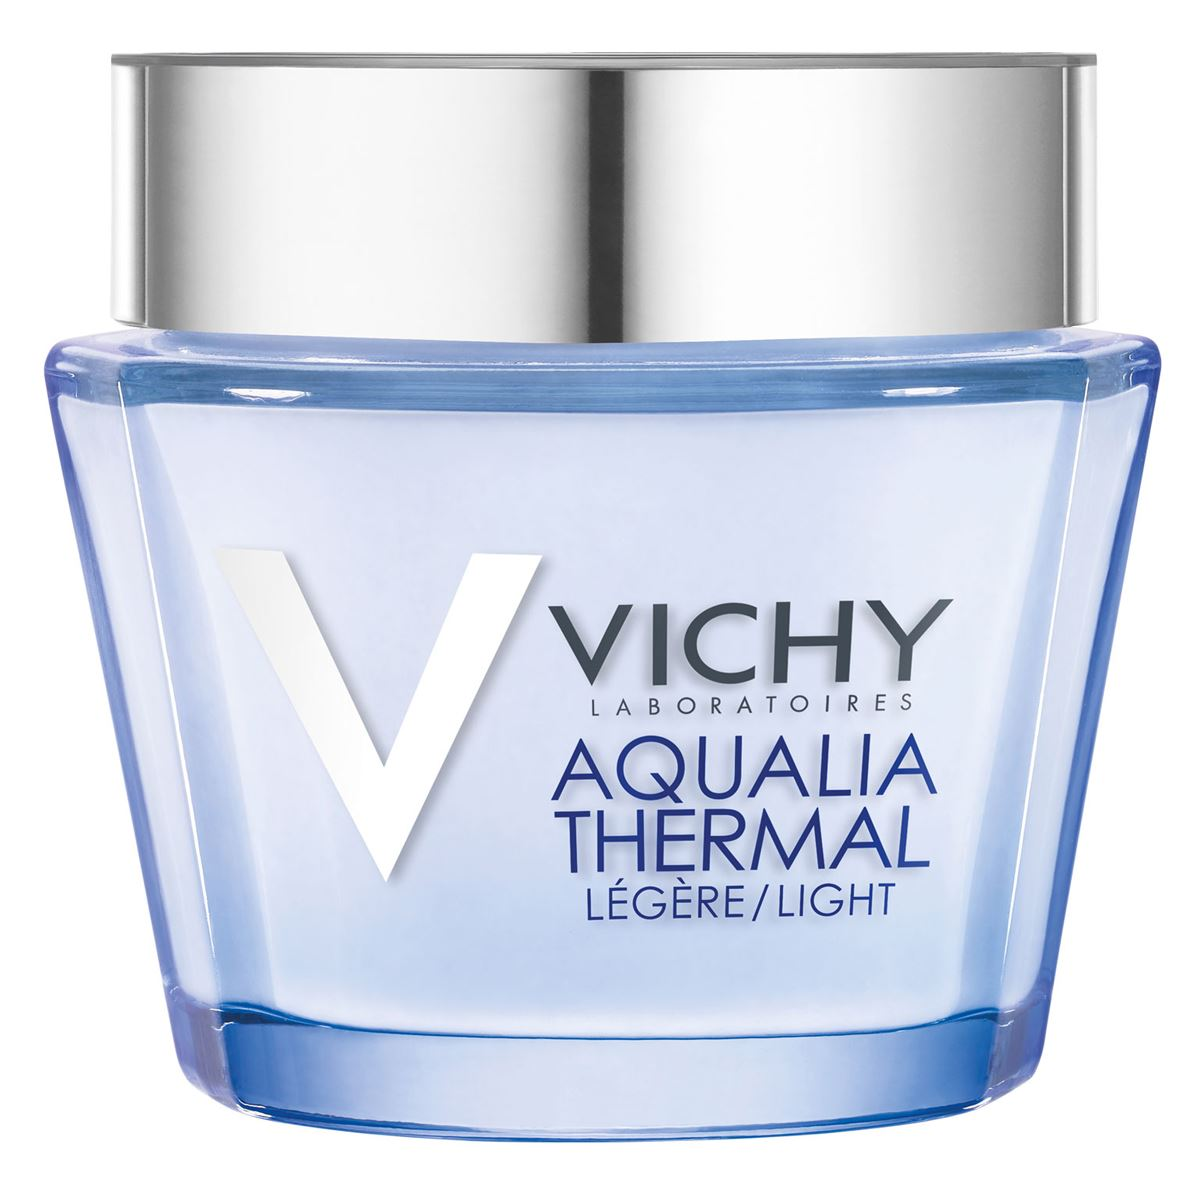 Aqualia Thermal Legere Light 15ml